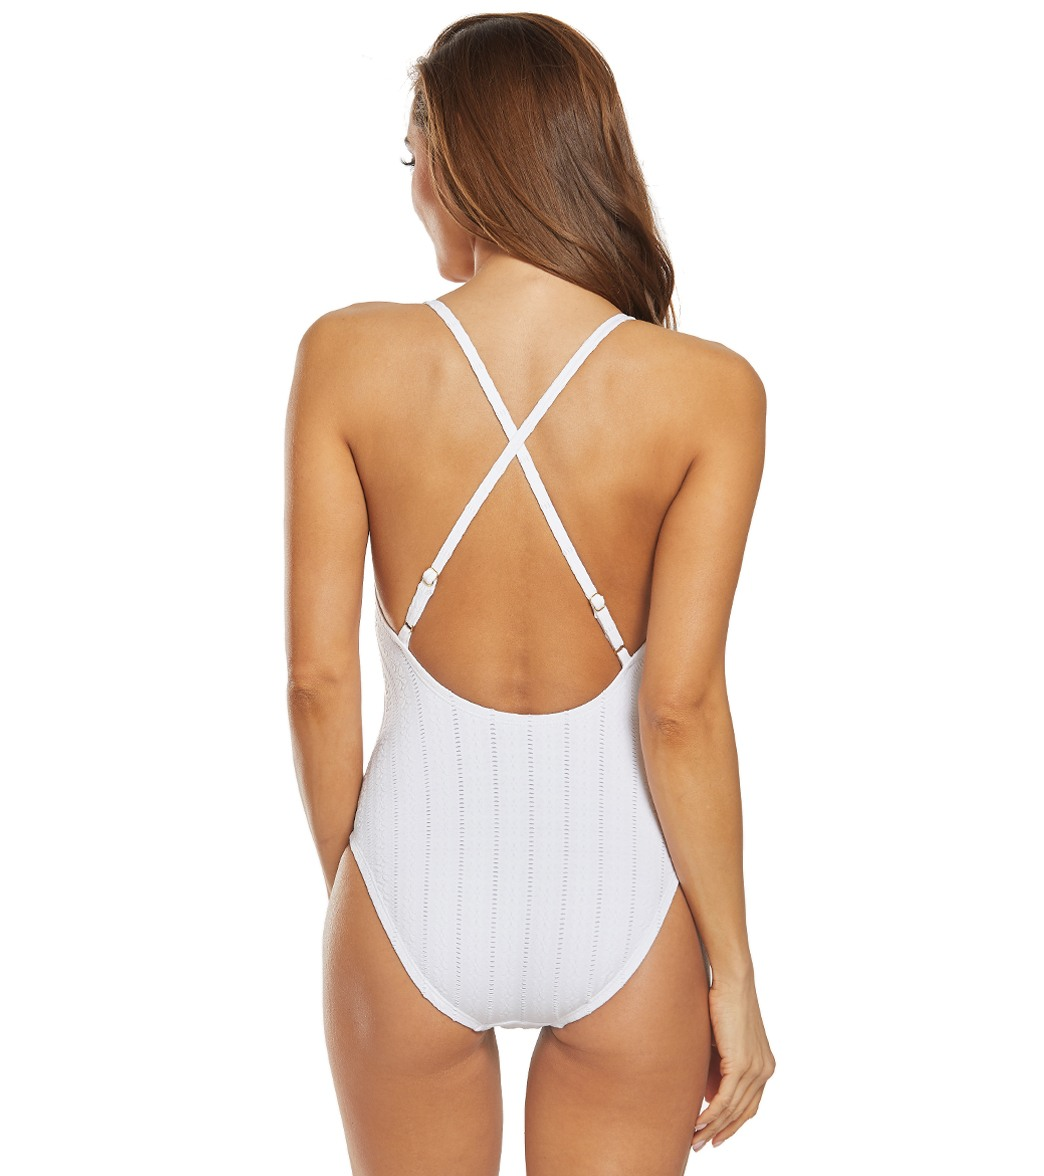 090fda9535 Kenneth Cole Reaction Flower Child Tie One Piece Swimsuit at ...